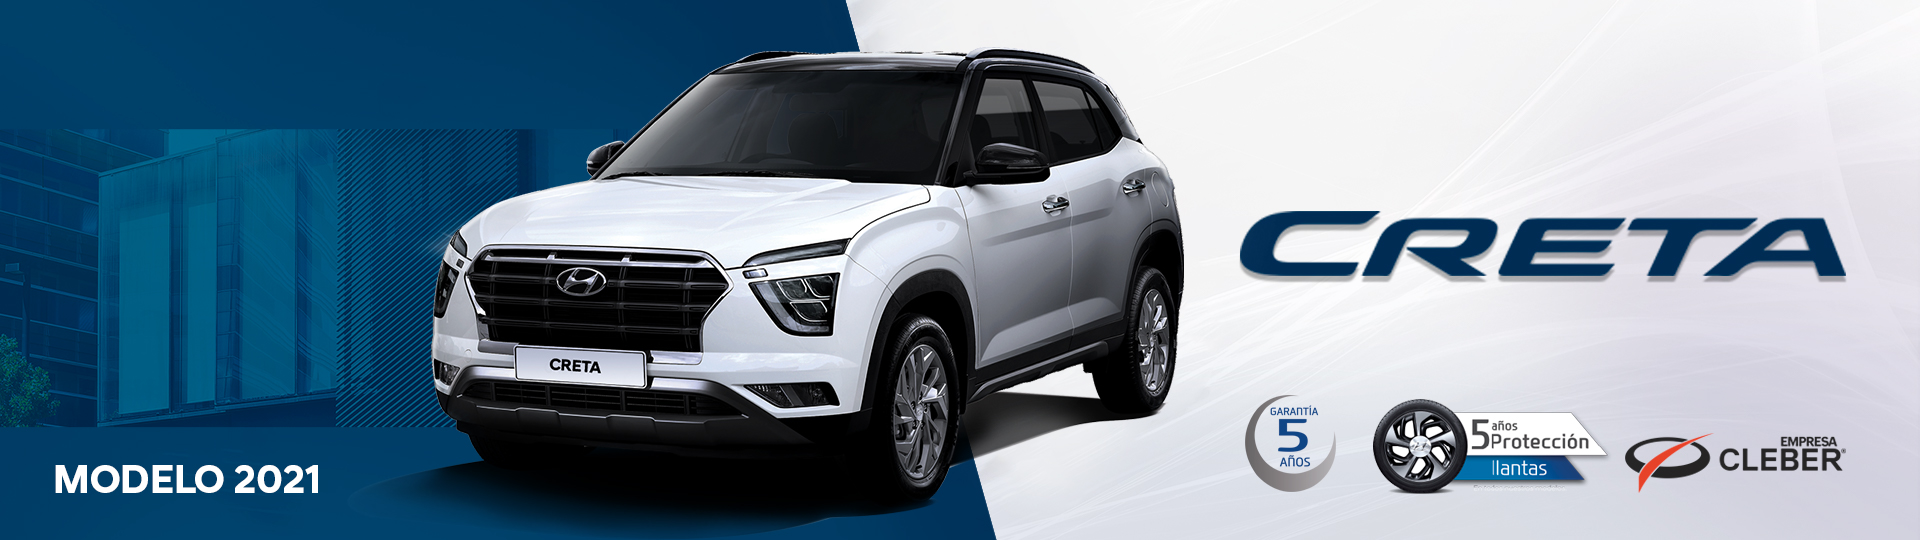 seccion_autos_creta